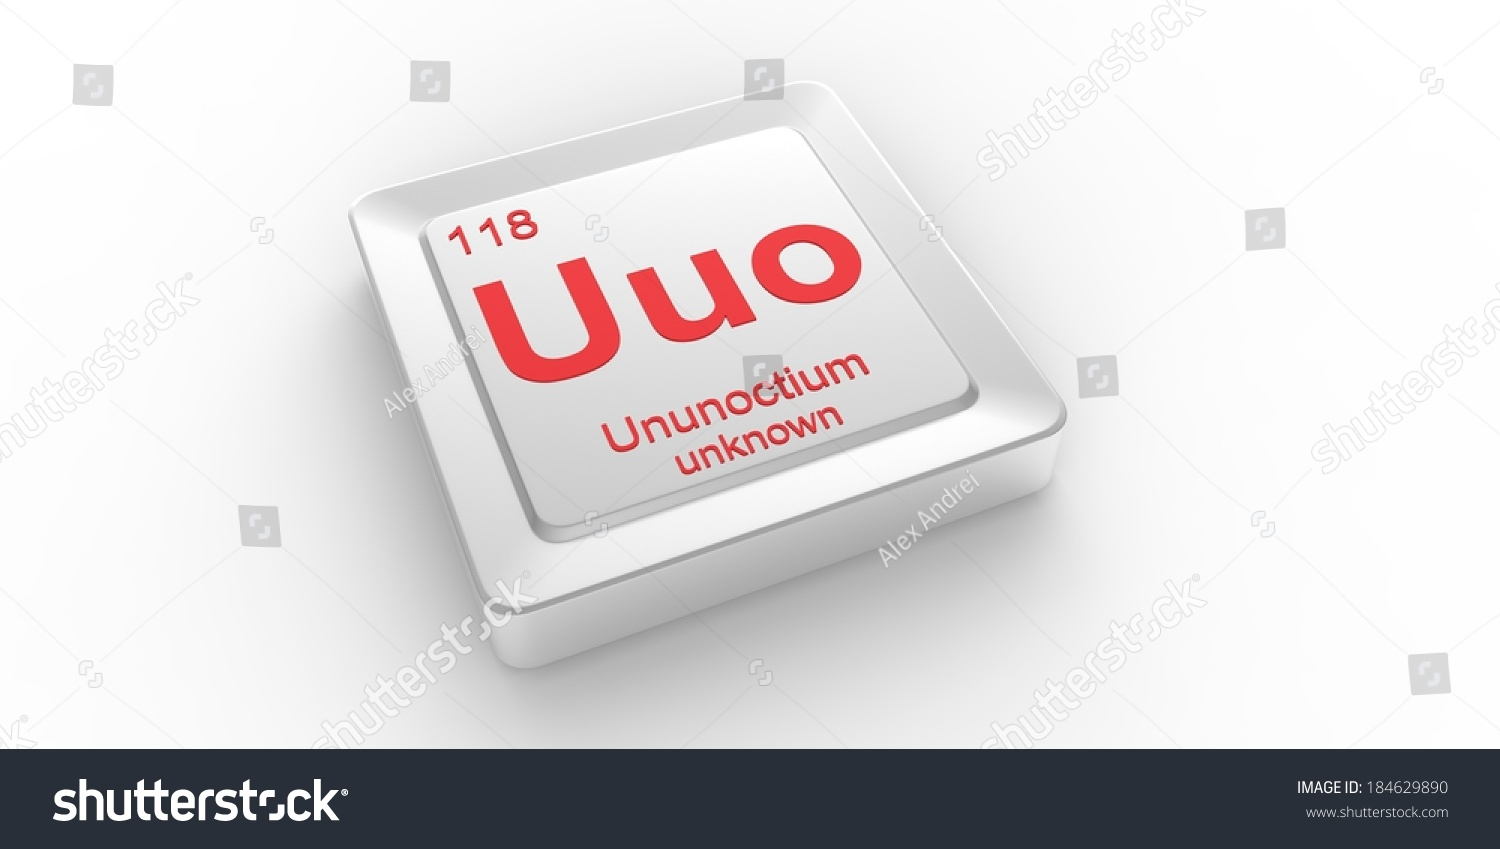 Uuo symbol 118 material ununoctium chemical stock illustration uuo symbol 118 material for ununoctium chemical element of the periodic table urtaz